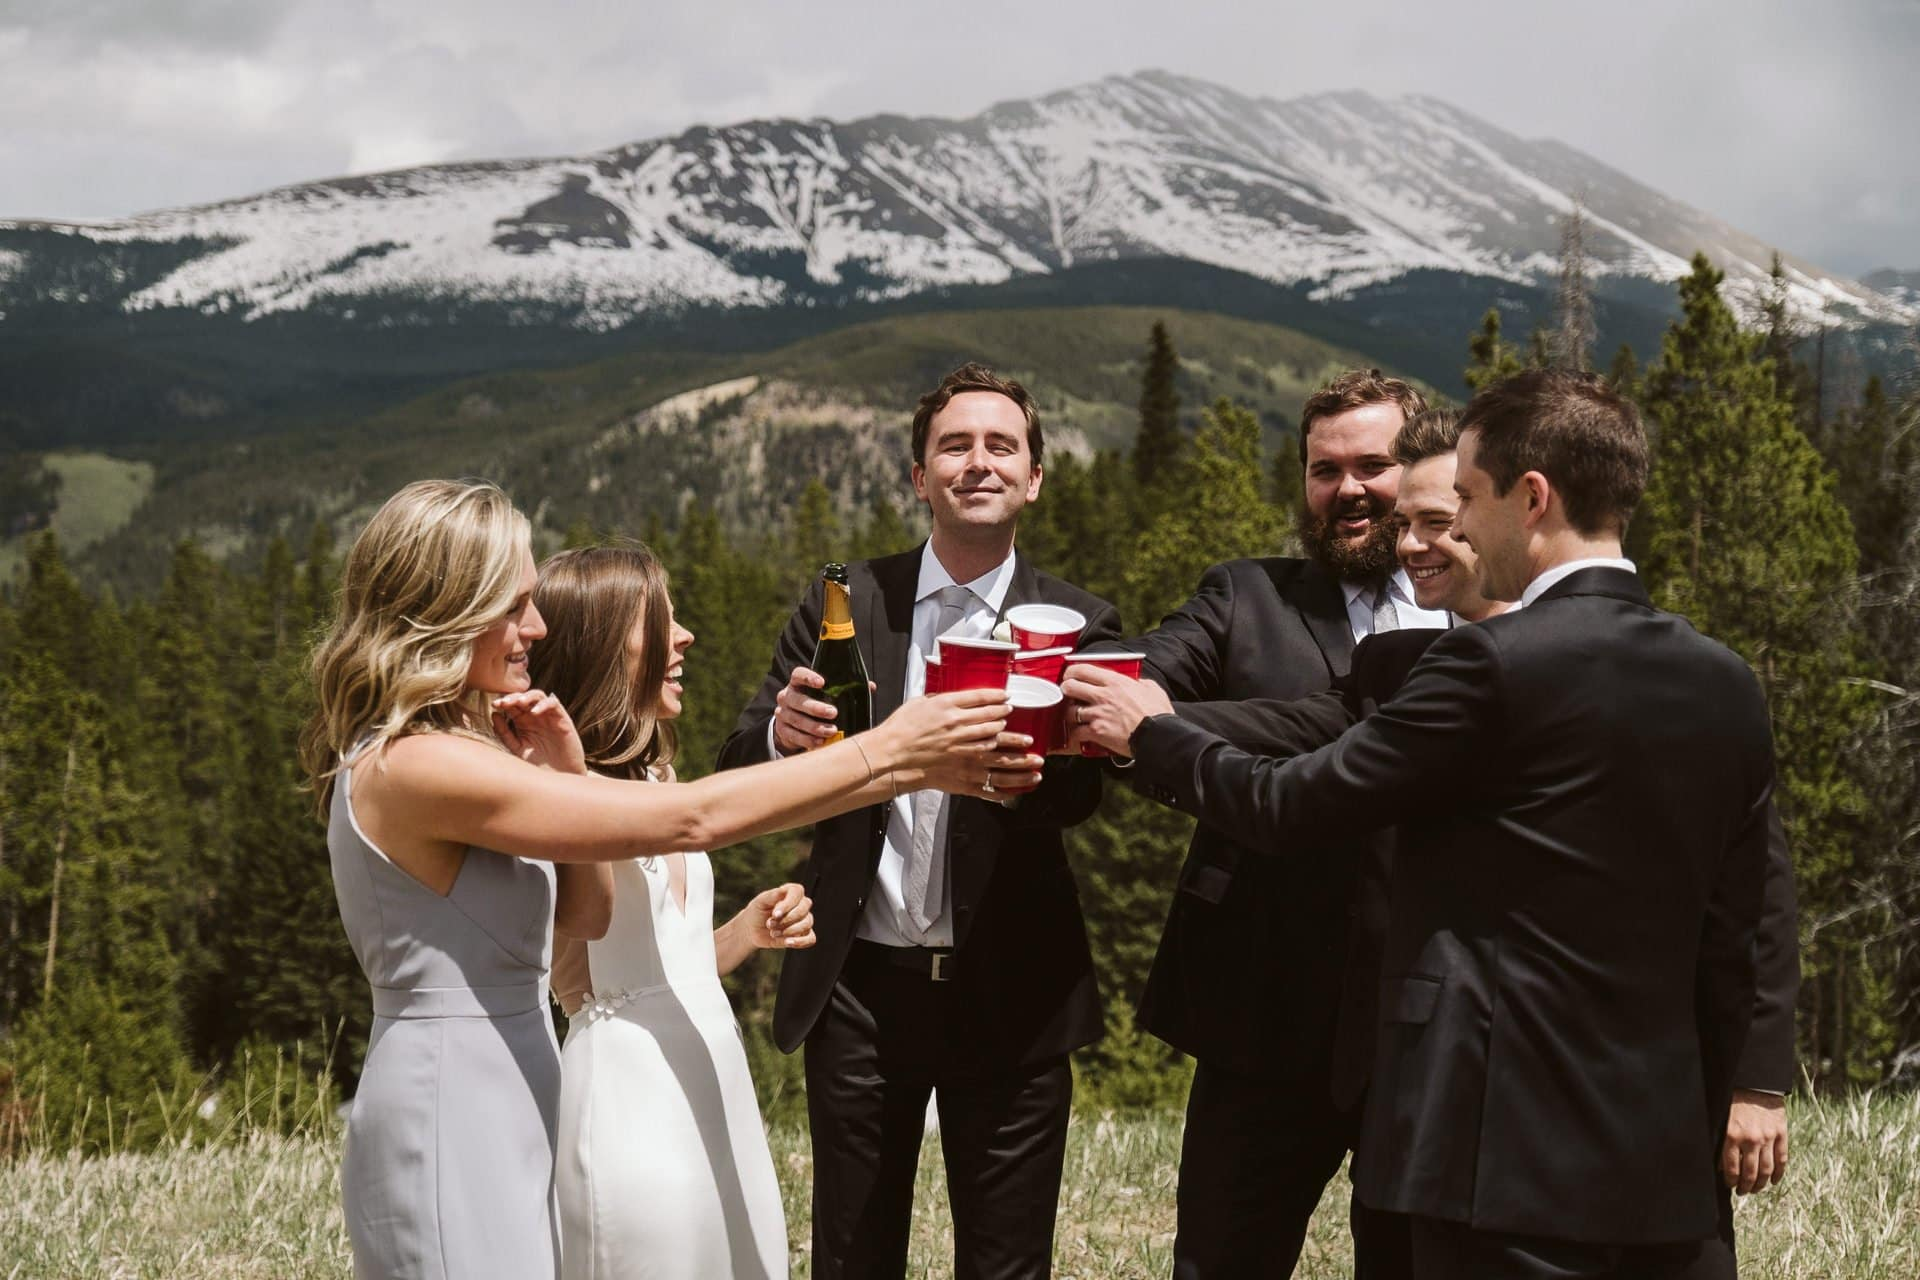 Bride and groom popping champagne with wedding party at Ten Mile Station, Breckenridge ski resort wedding, Colorado mountain wedding photographer